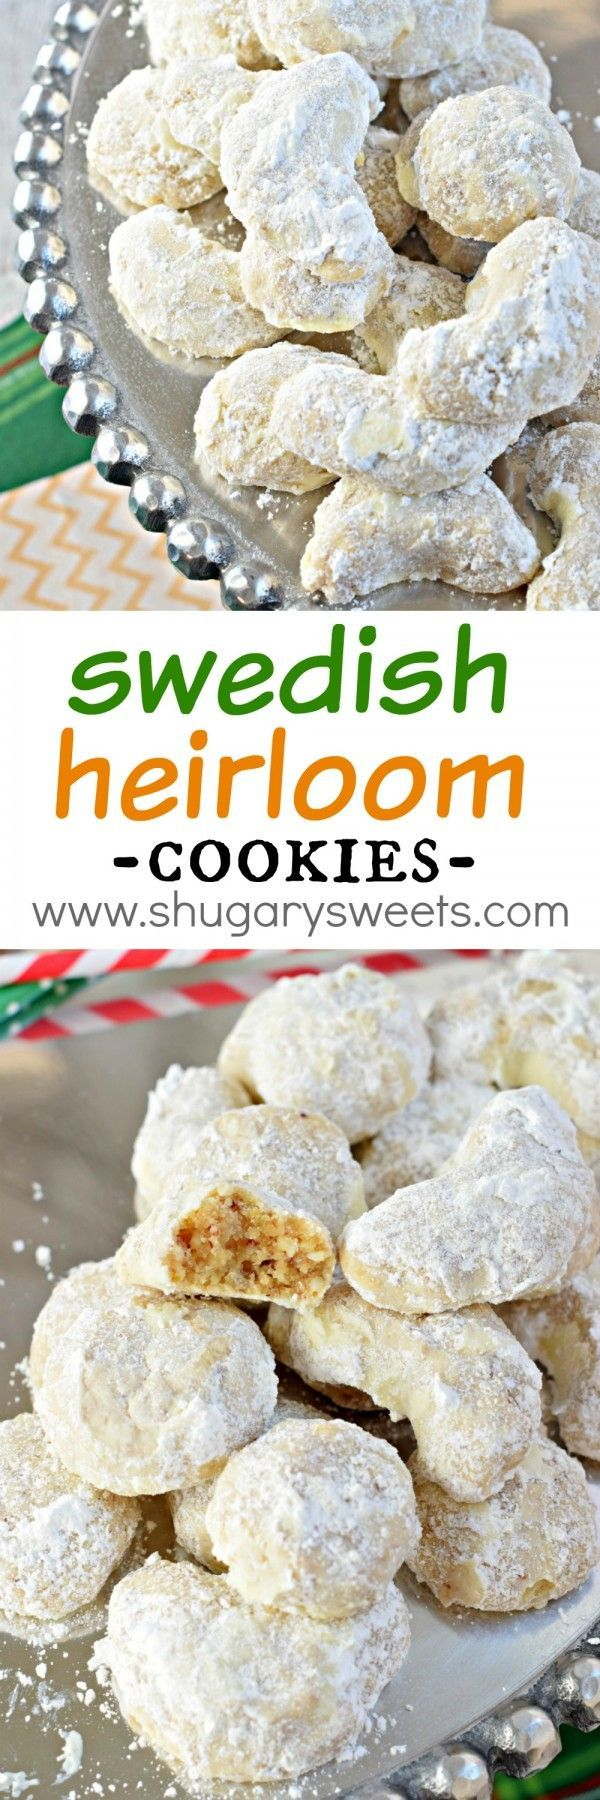 Whether you call these by Swedish Heirloom Cookies or by